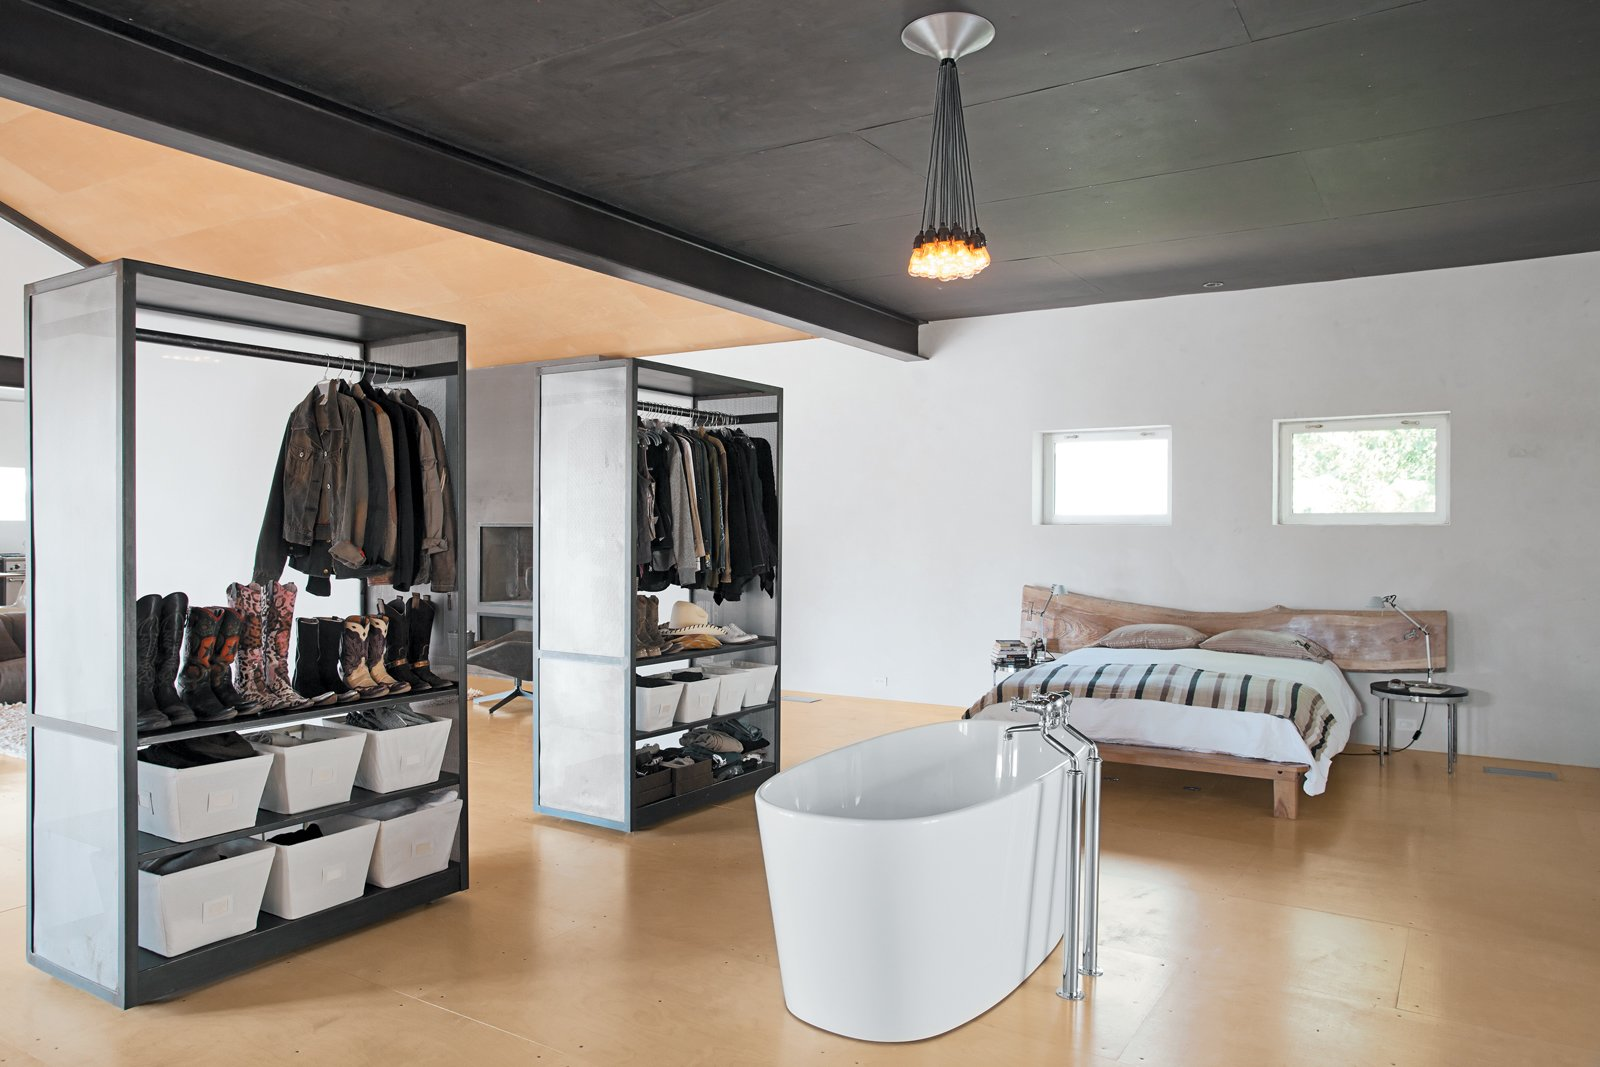 In the bedroom of Barbara Hill's Marta, Texas home, an improbably placed tub is situated in front of two closets that can easily be maneuvered thanks to skateboard wheels affixed to the underside.  Beautiful Bedrooms by Sara Ost